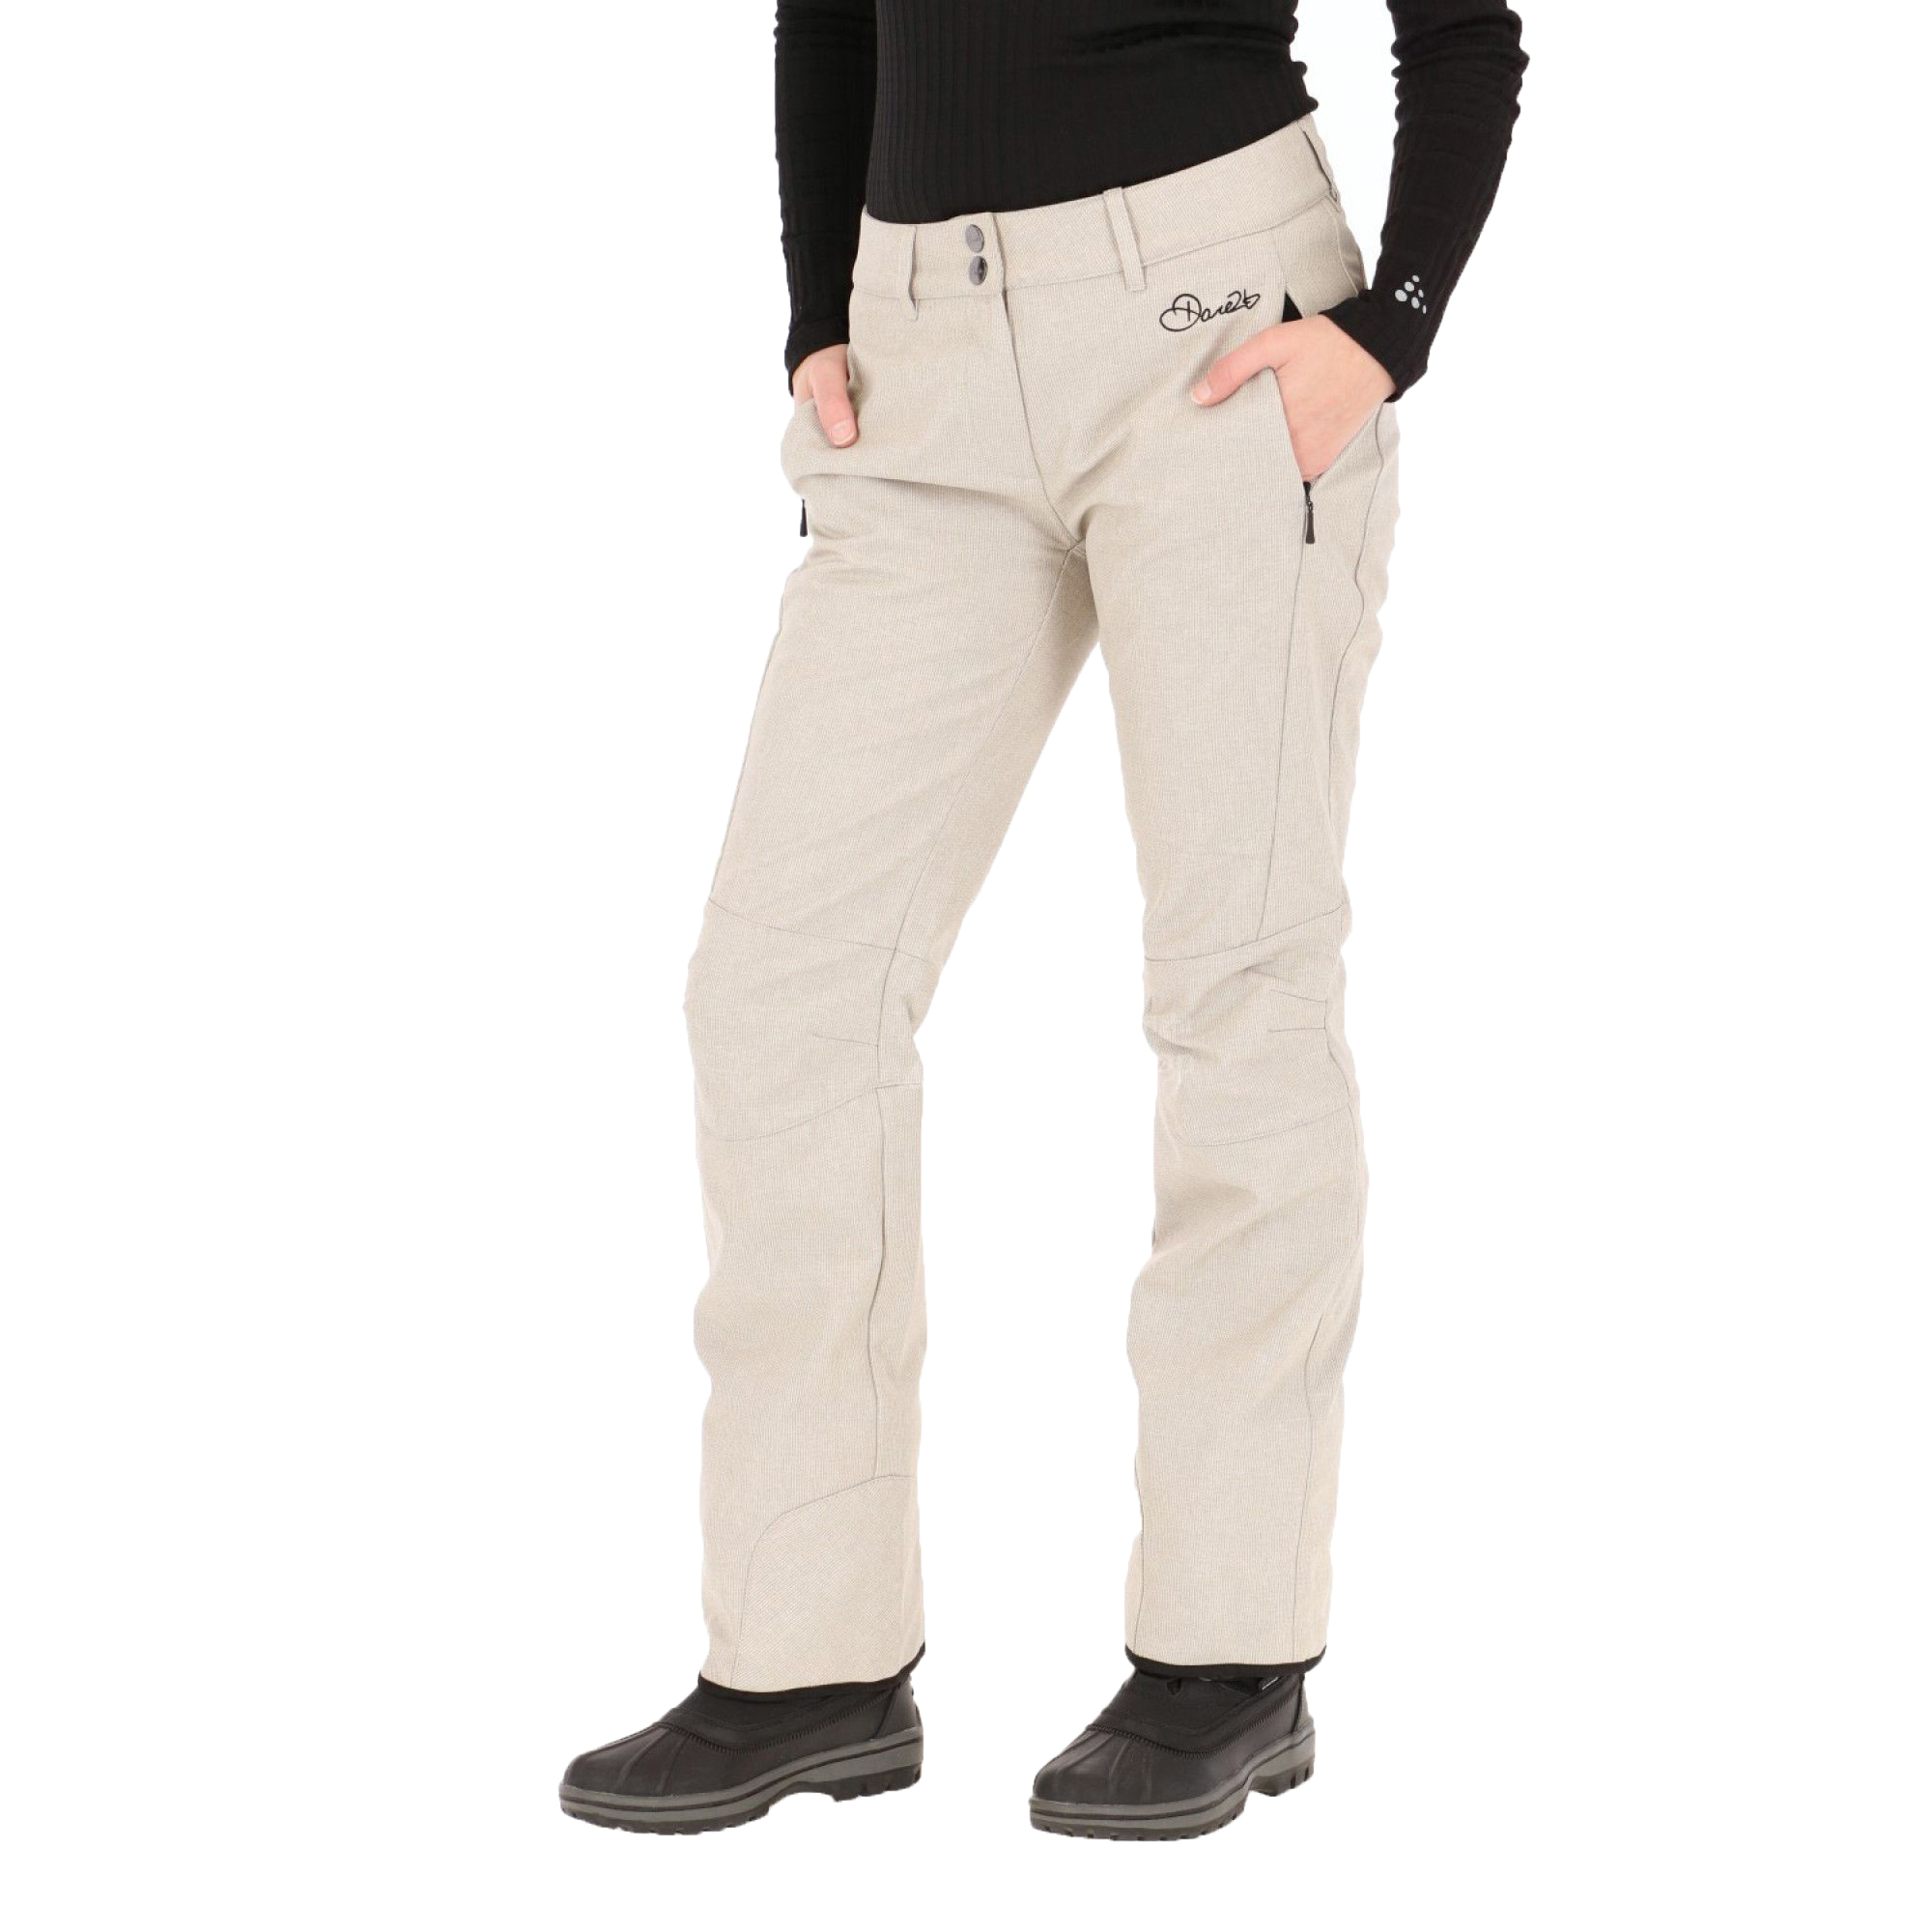 Dare2b-Remark-Womens-Water-Repellent-Breathable-Softshell-Ski-Trousers thumbnail 7